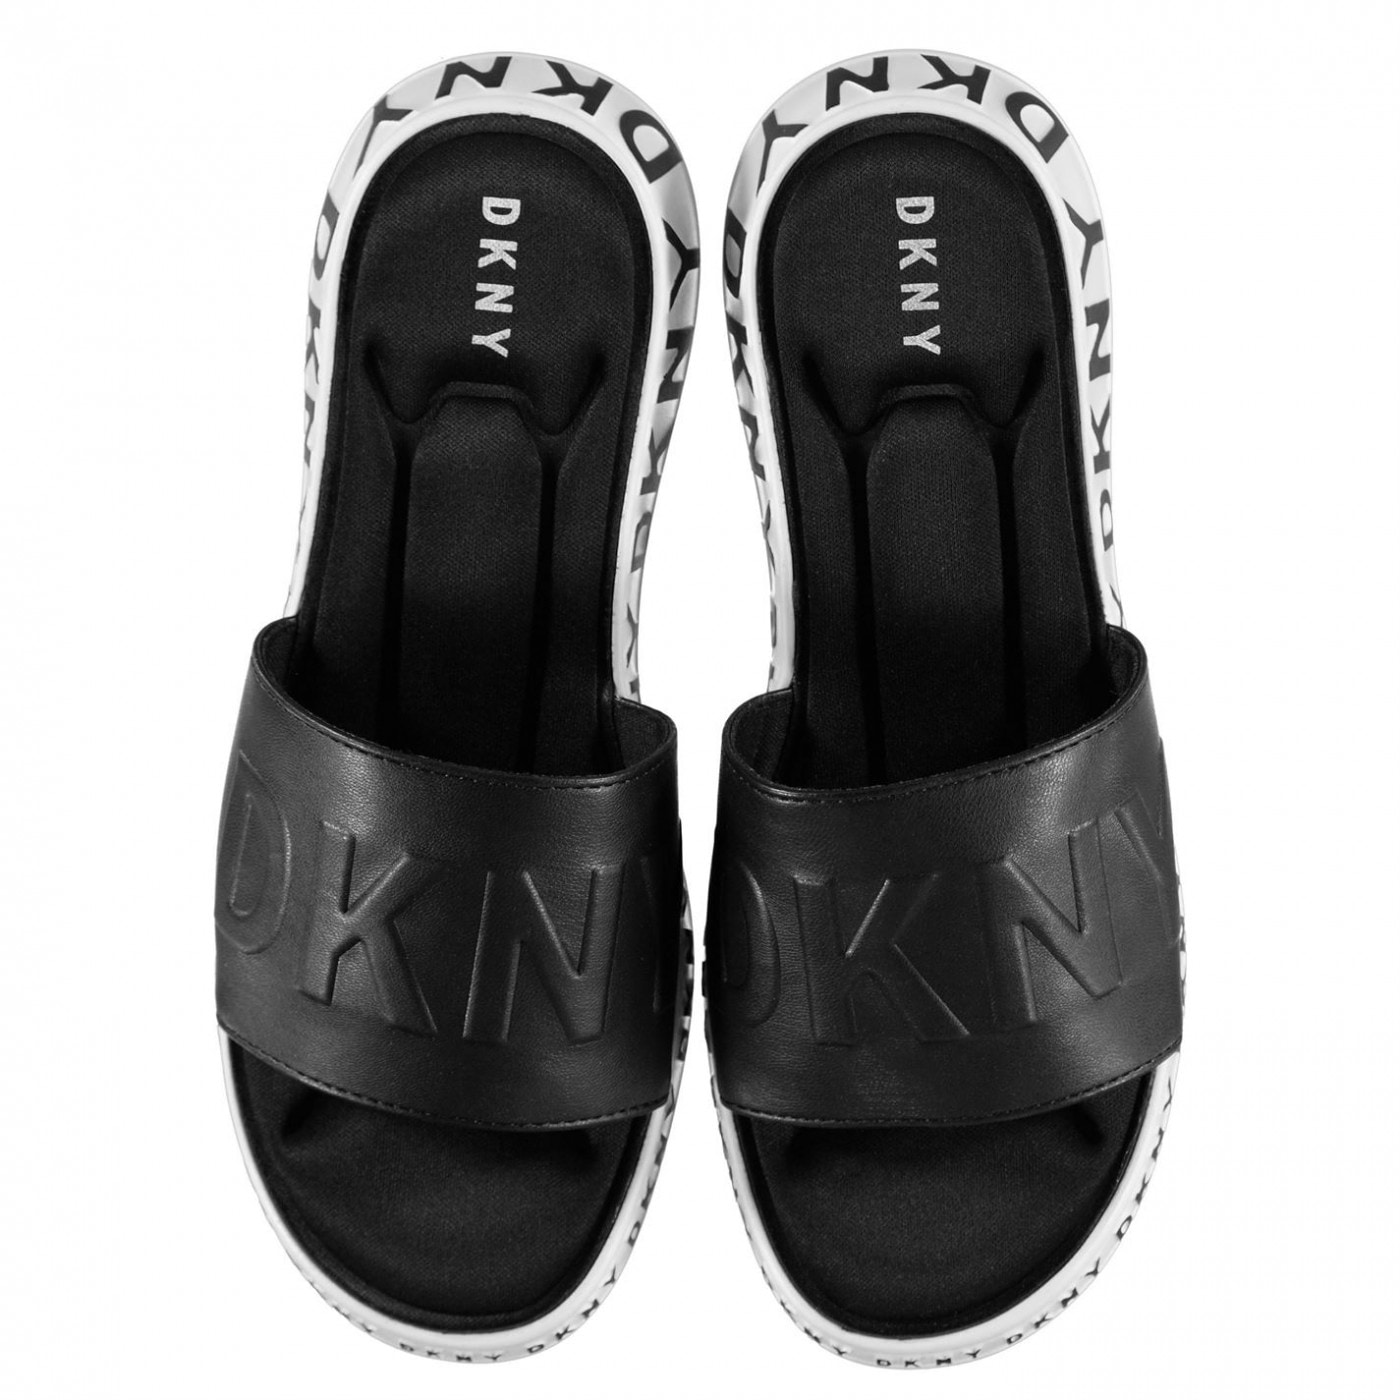 DKNY Mara Sliders